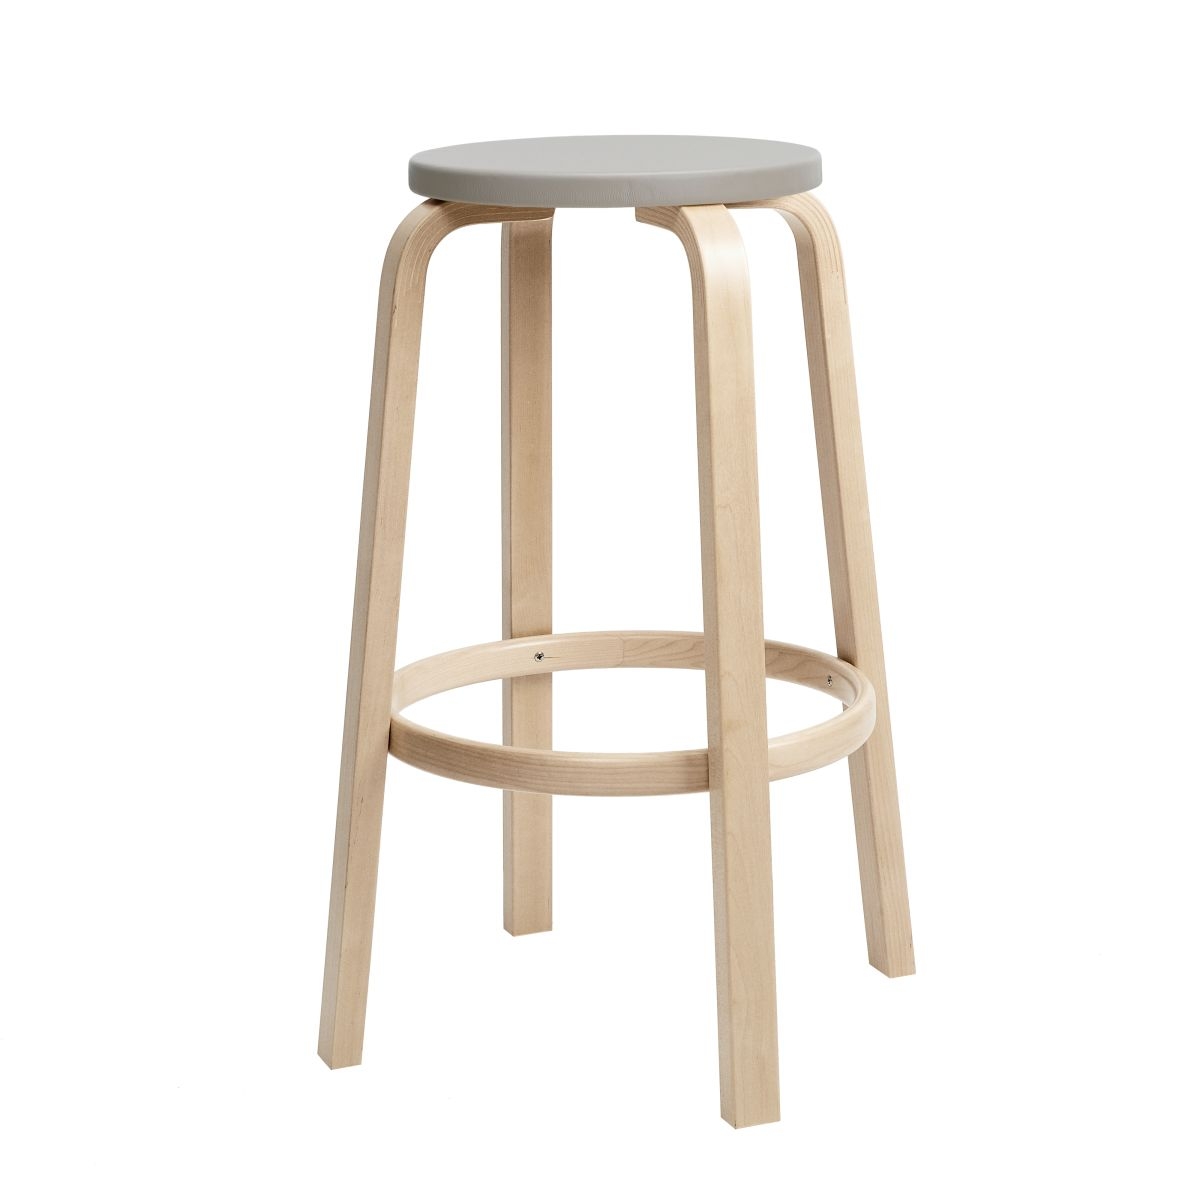 Bar-Stool-64-75cm-clear-lacquered-seat-leather-upholstery_F-2912680